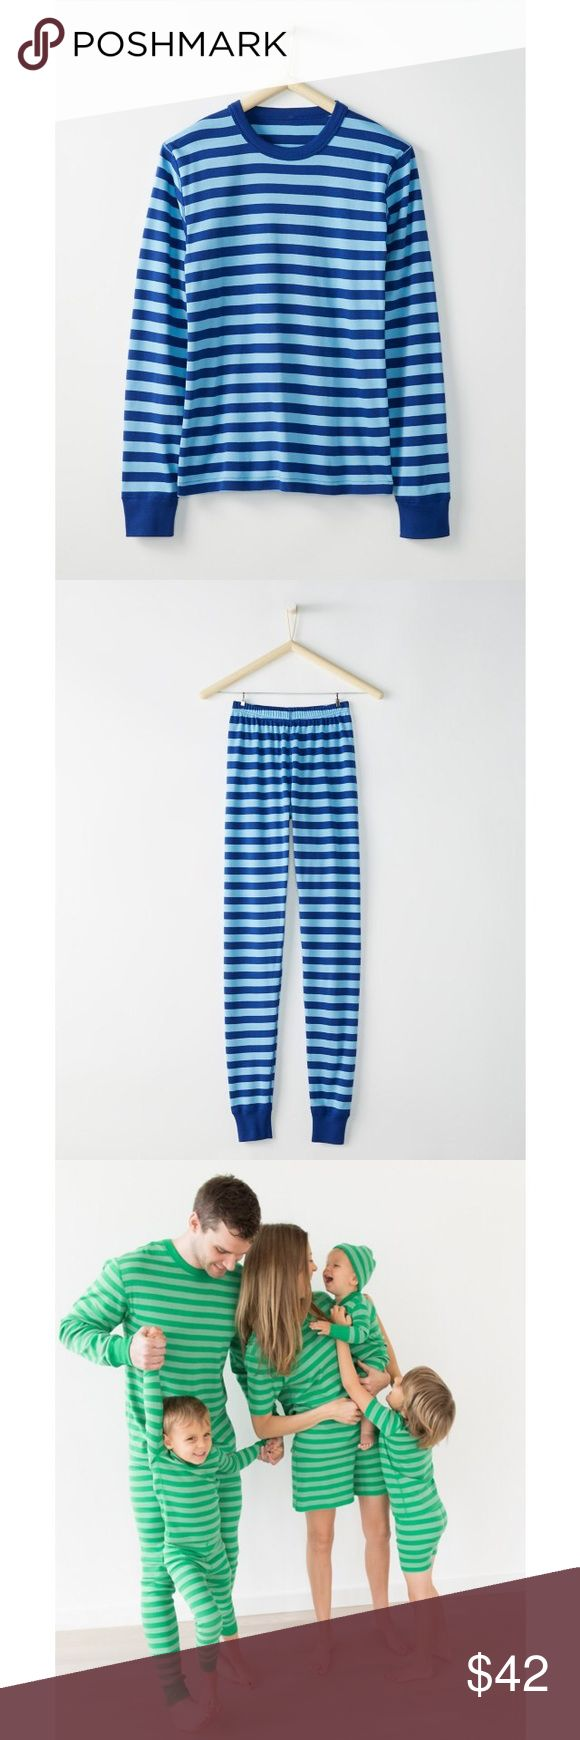 Hanna Andersson adult long John pj's EUC- worn twice! Great for Christmas card photos! It's a navy and cobalt blue stripe. Size M. They sell these for $44 each on the website! Hanna Andersson Other